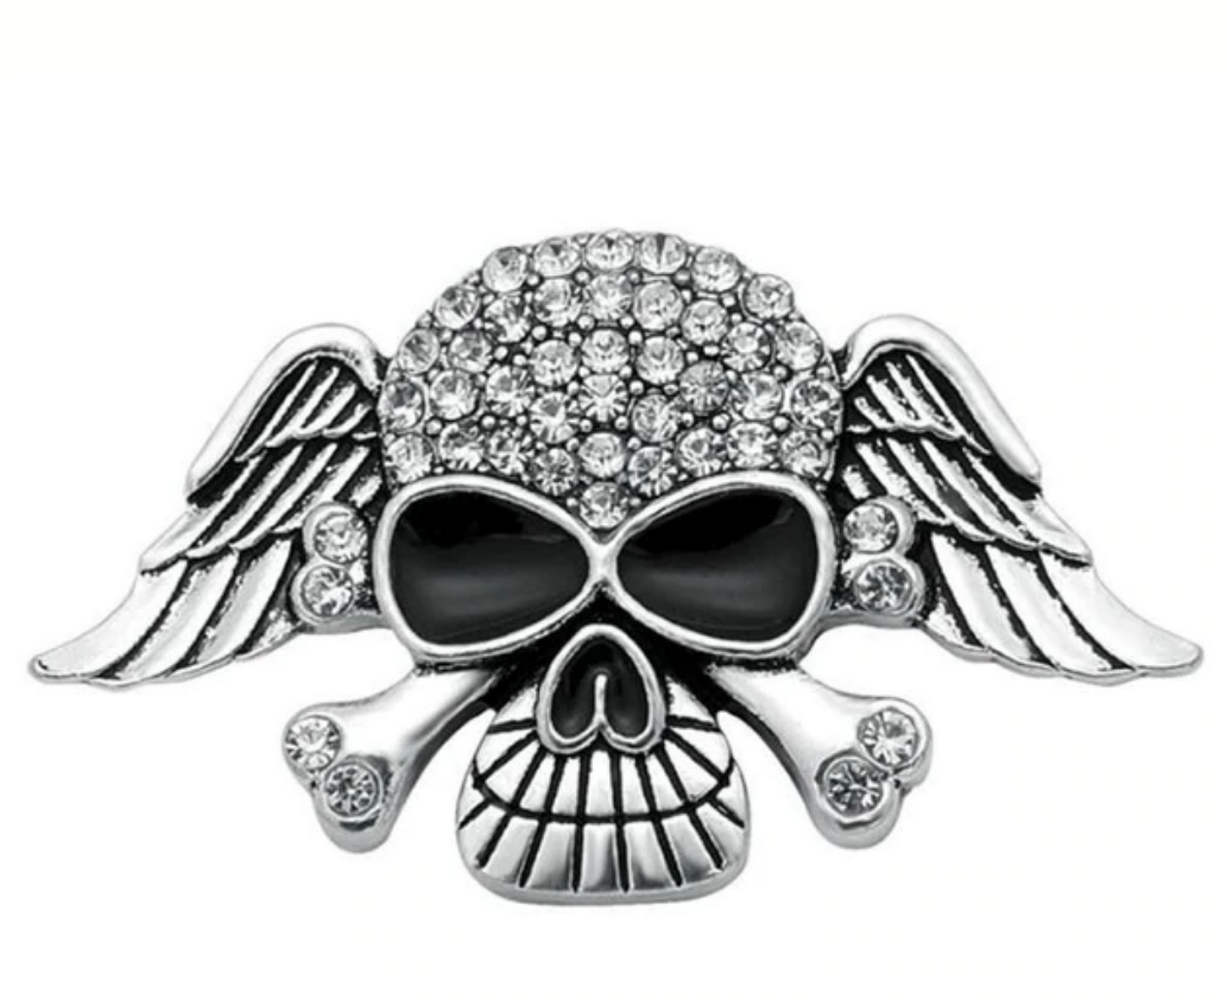 Snap Jewelry Rhinestone - Wings, Skull & Bones Clear Stones